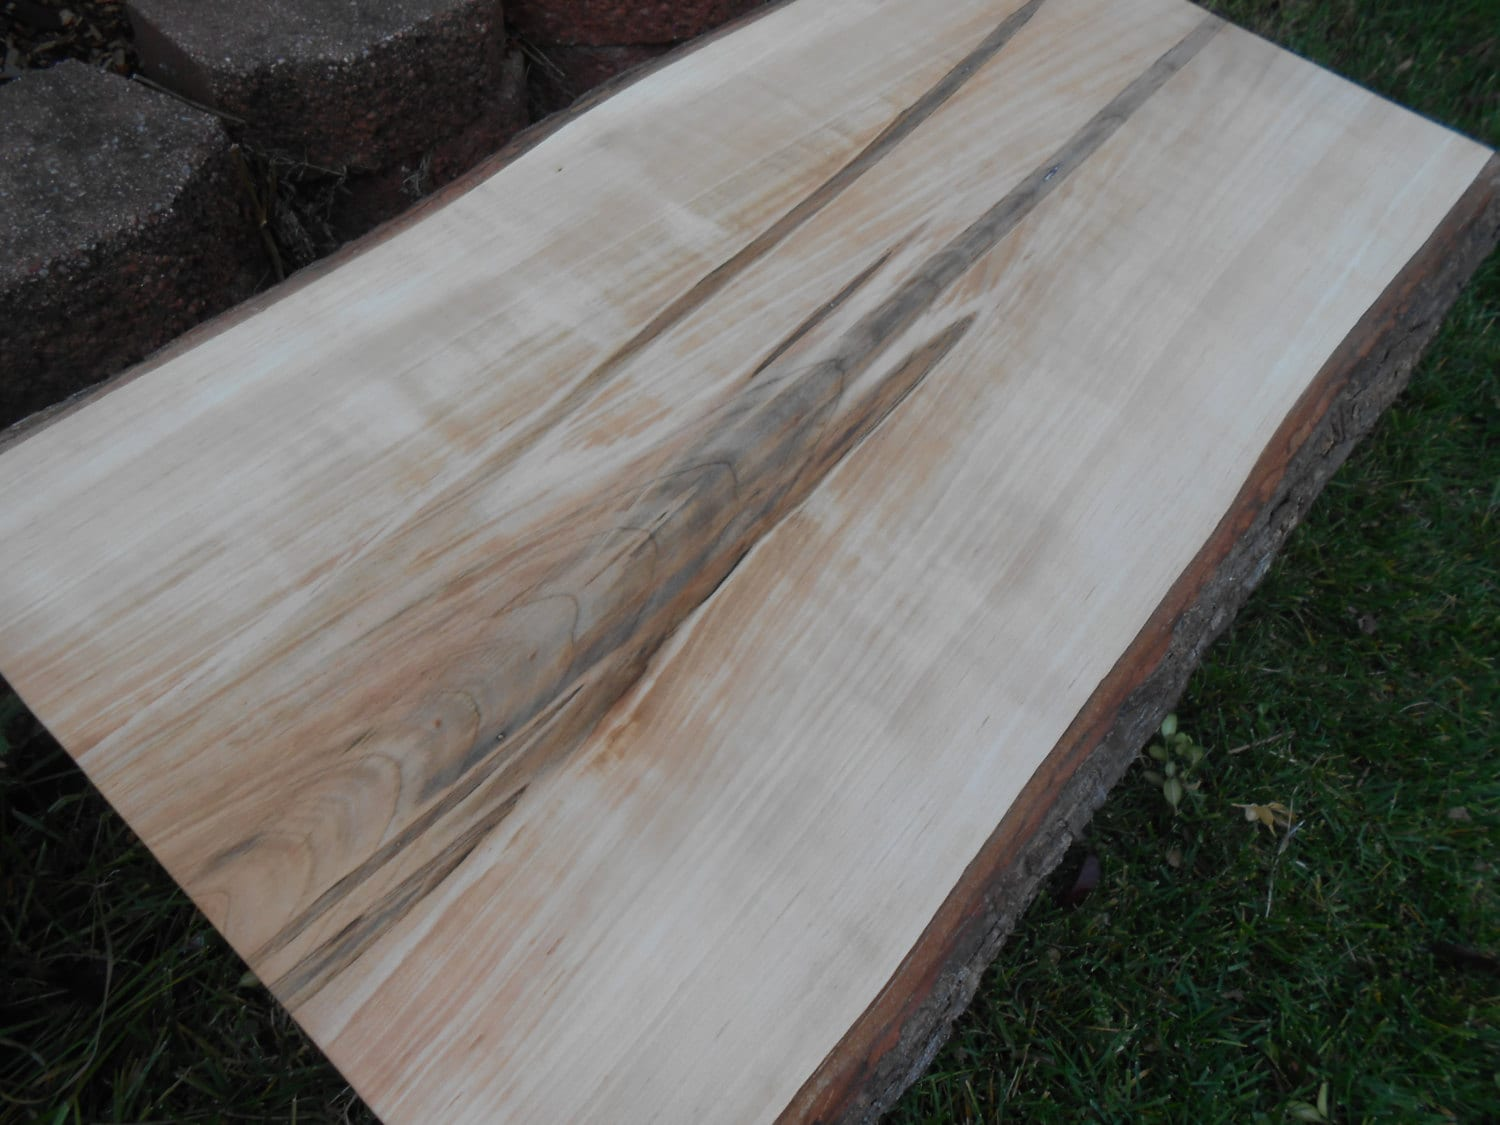 HUGE Rustic Ambrosia Maple Cutting Board Table Top. With